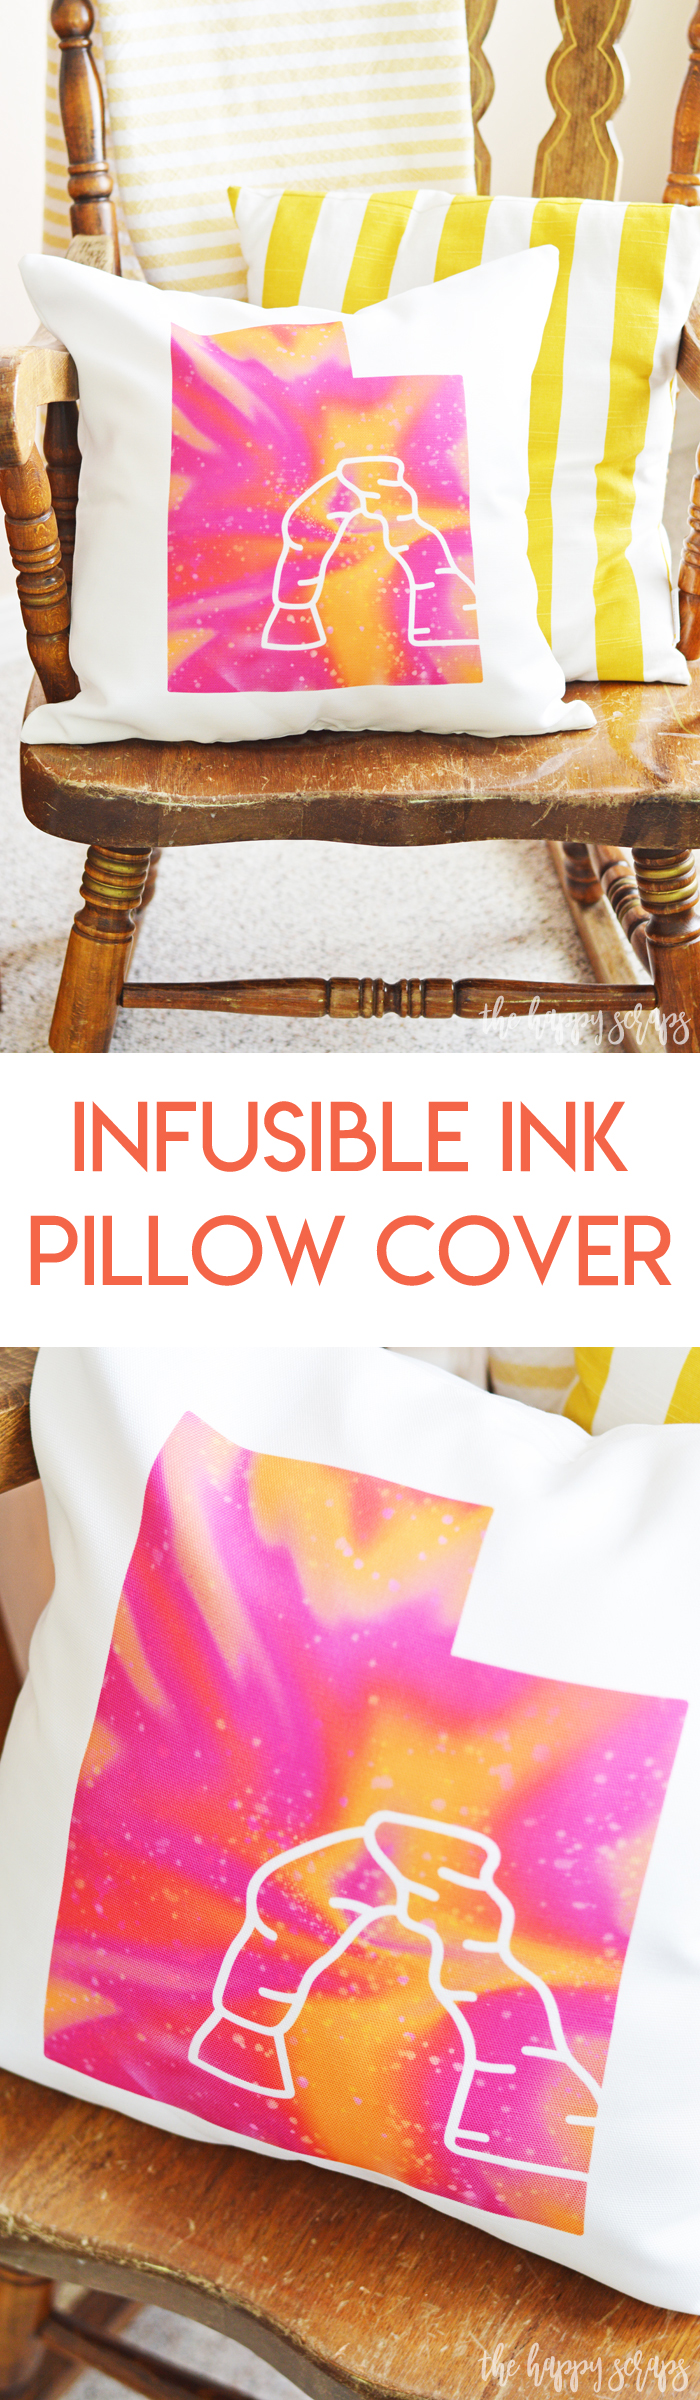 Using the new Infusible Ink Pillow Cover, you can create amazing and vibrant throw pillows for your home! What kind of pillow will you create first?